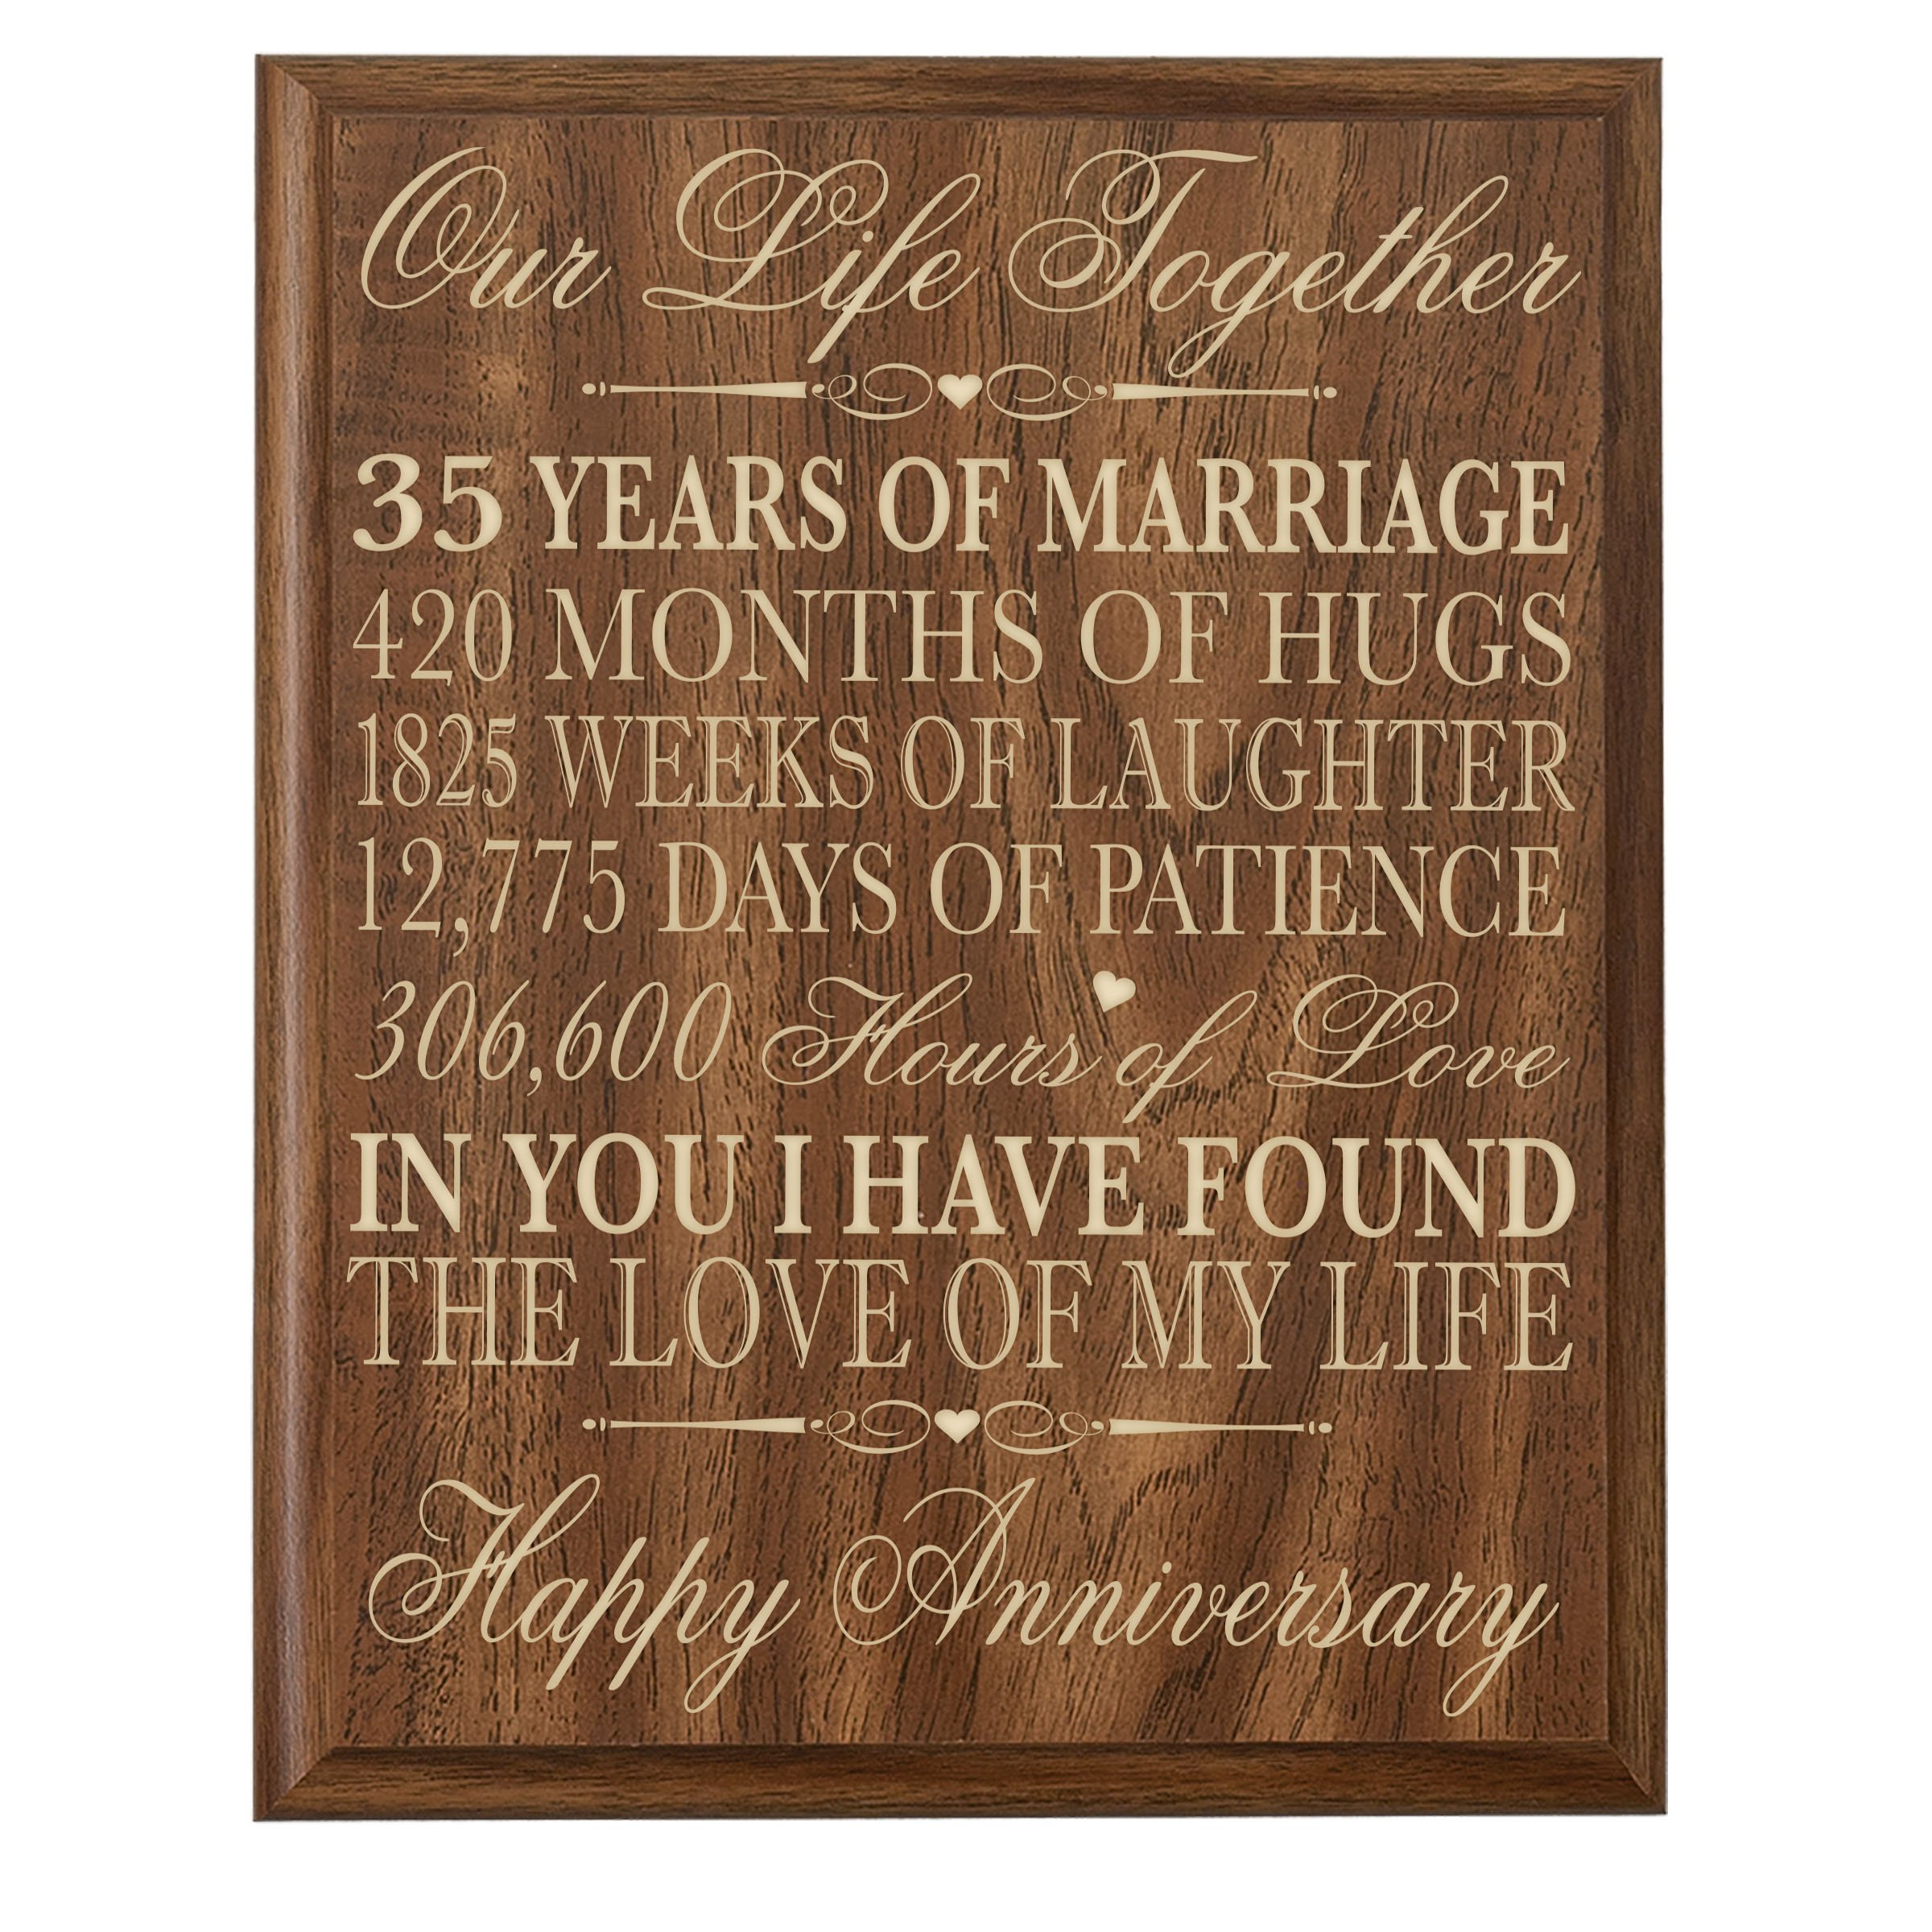 Cheap Top Wedding Anniversary Gifts Find Top Wedding Anniversary